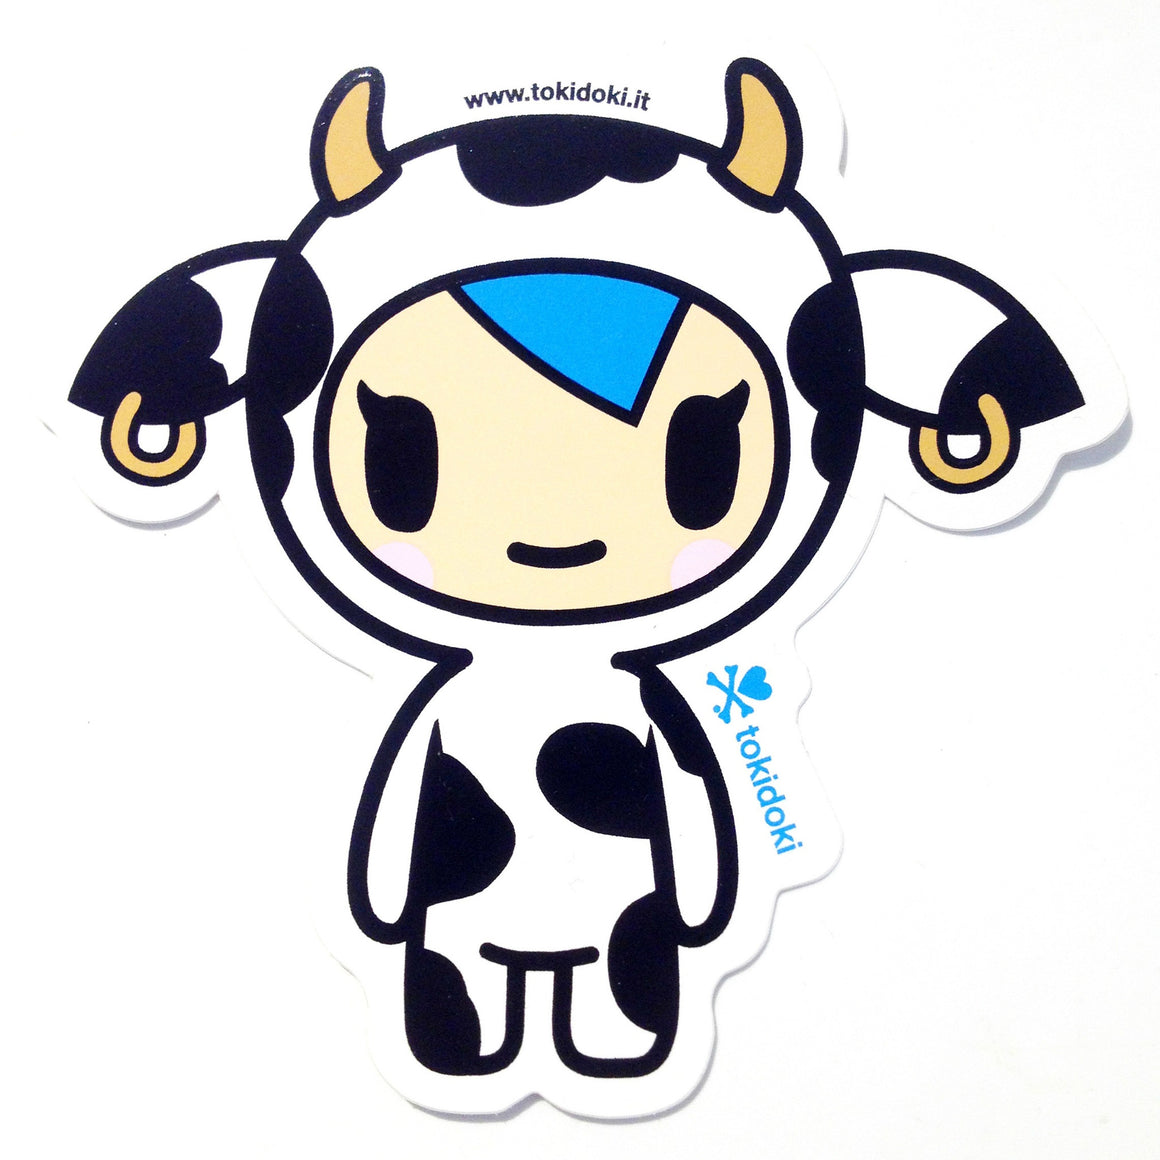 Mozzarella Moofia by Tokidoki Sticker - Mindzai